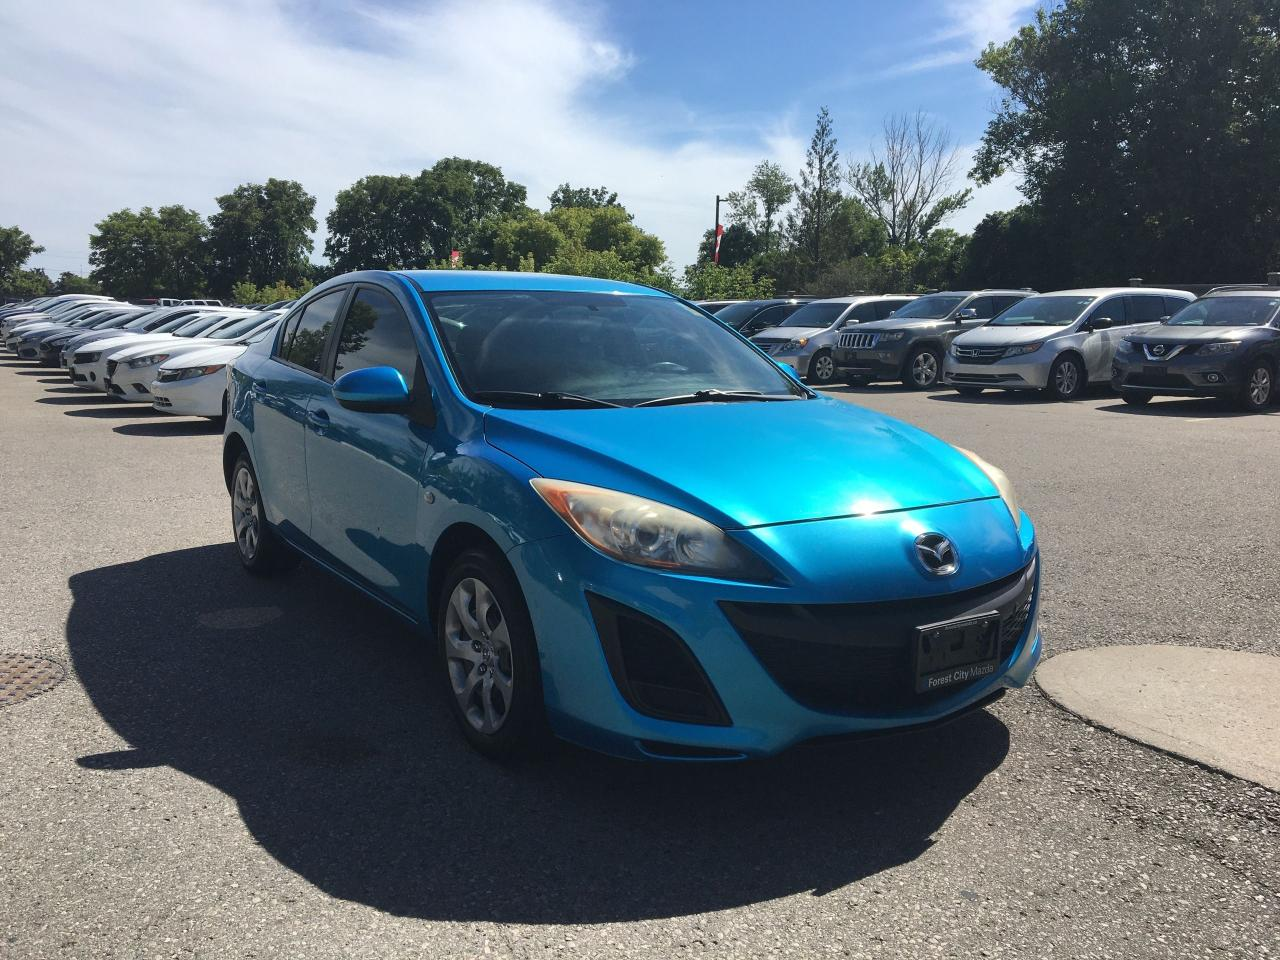 used 2010 mazda mazda3 gs for sale in london, ontario carpages.ca